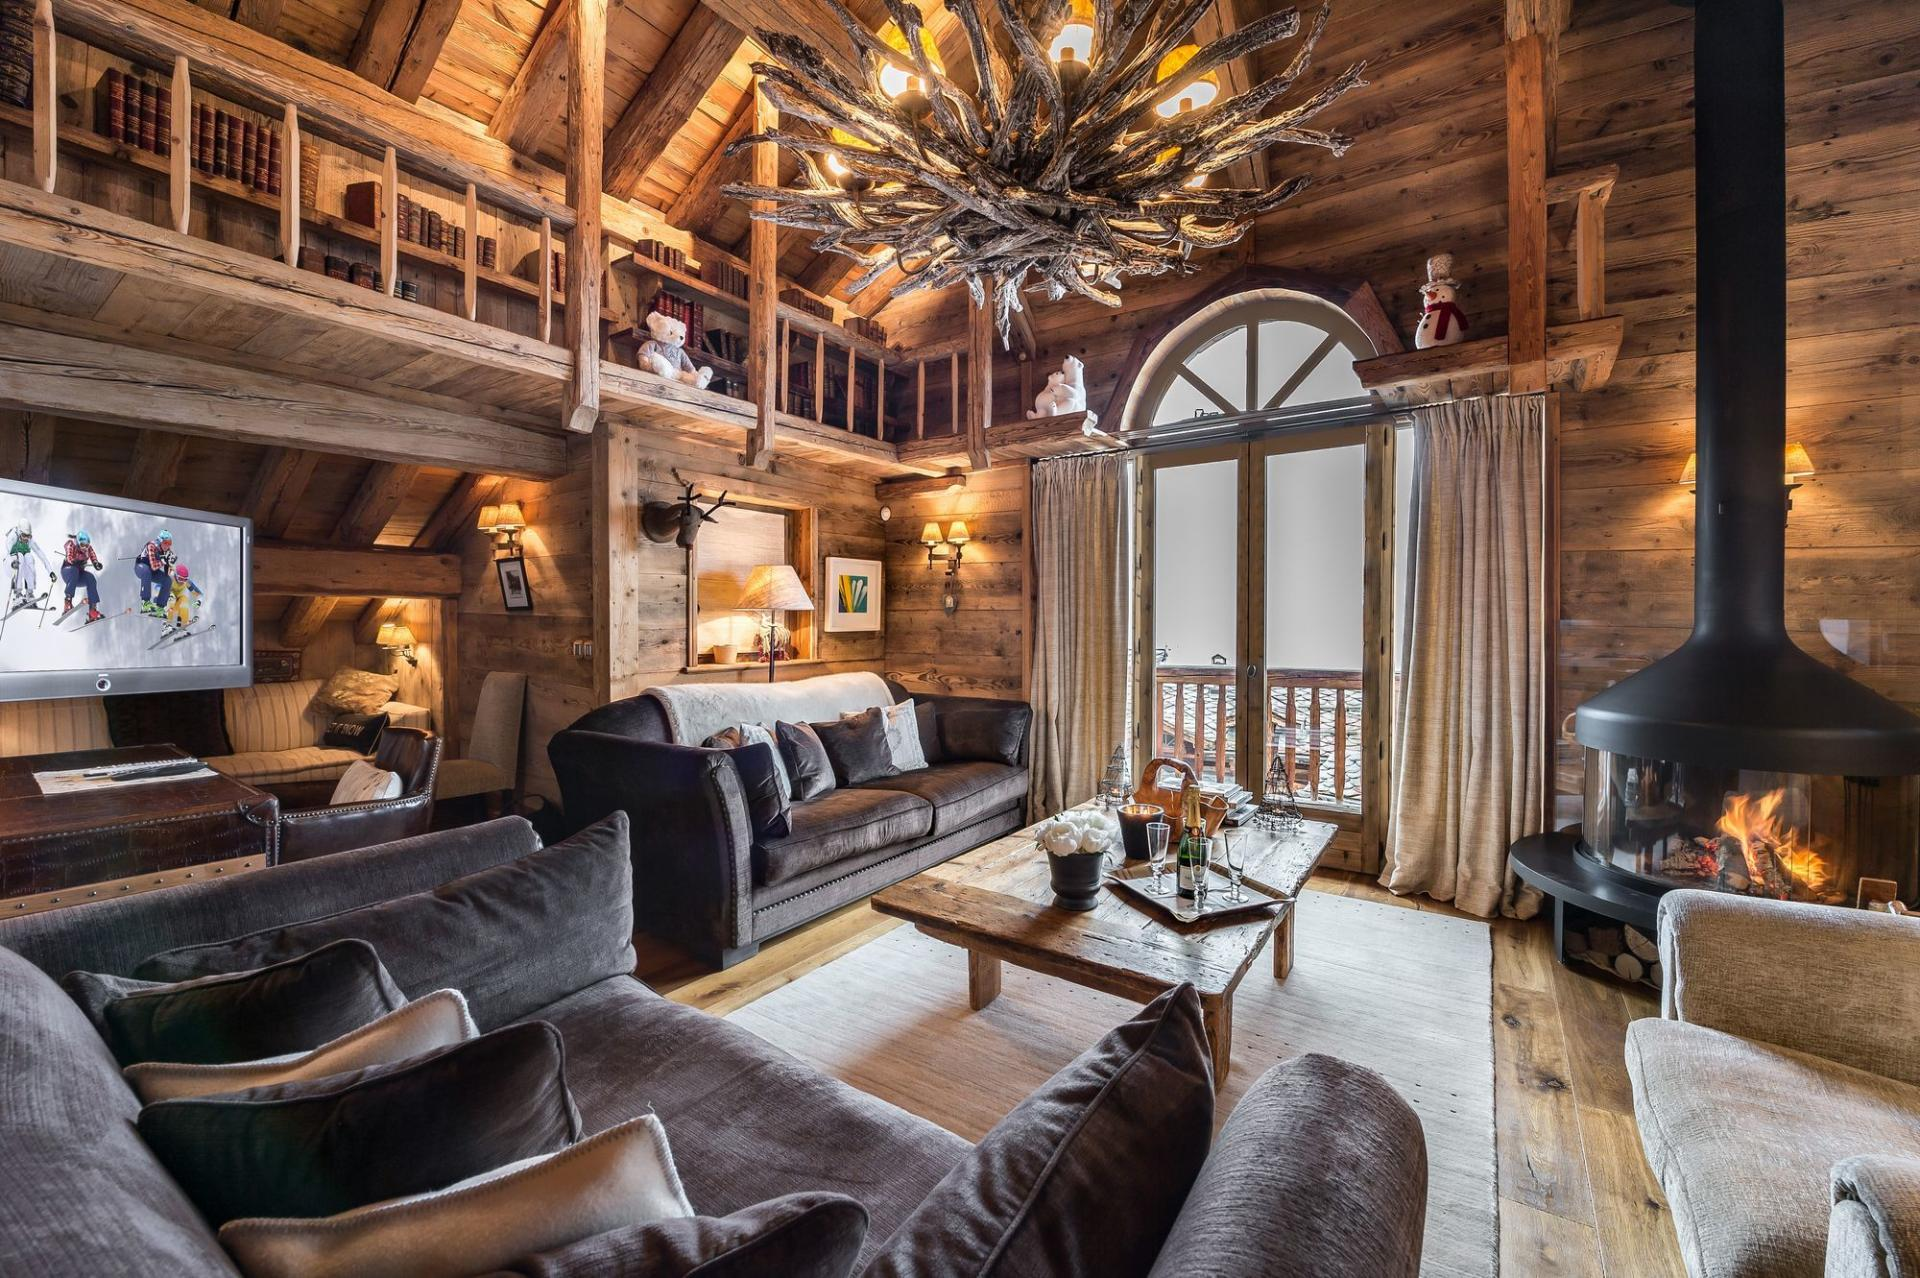 CHALET BELLECOTE, A LUXURY CHALET RENTAL IN COURCHEVEL FOR OUR SKI HOLIDAY